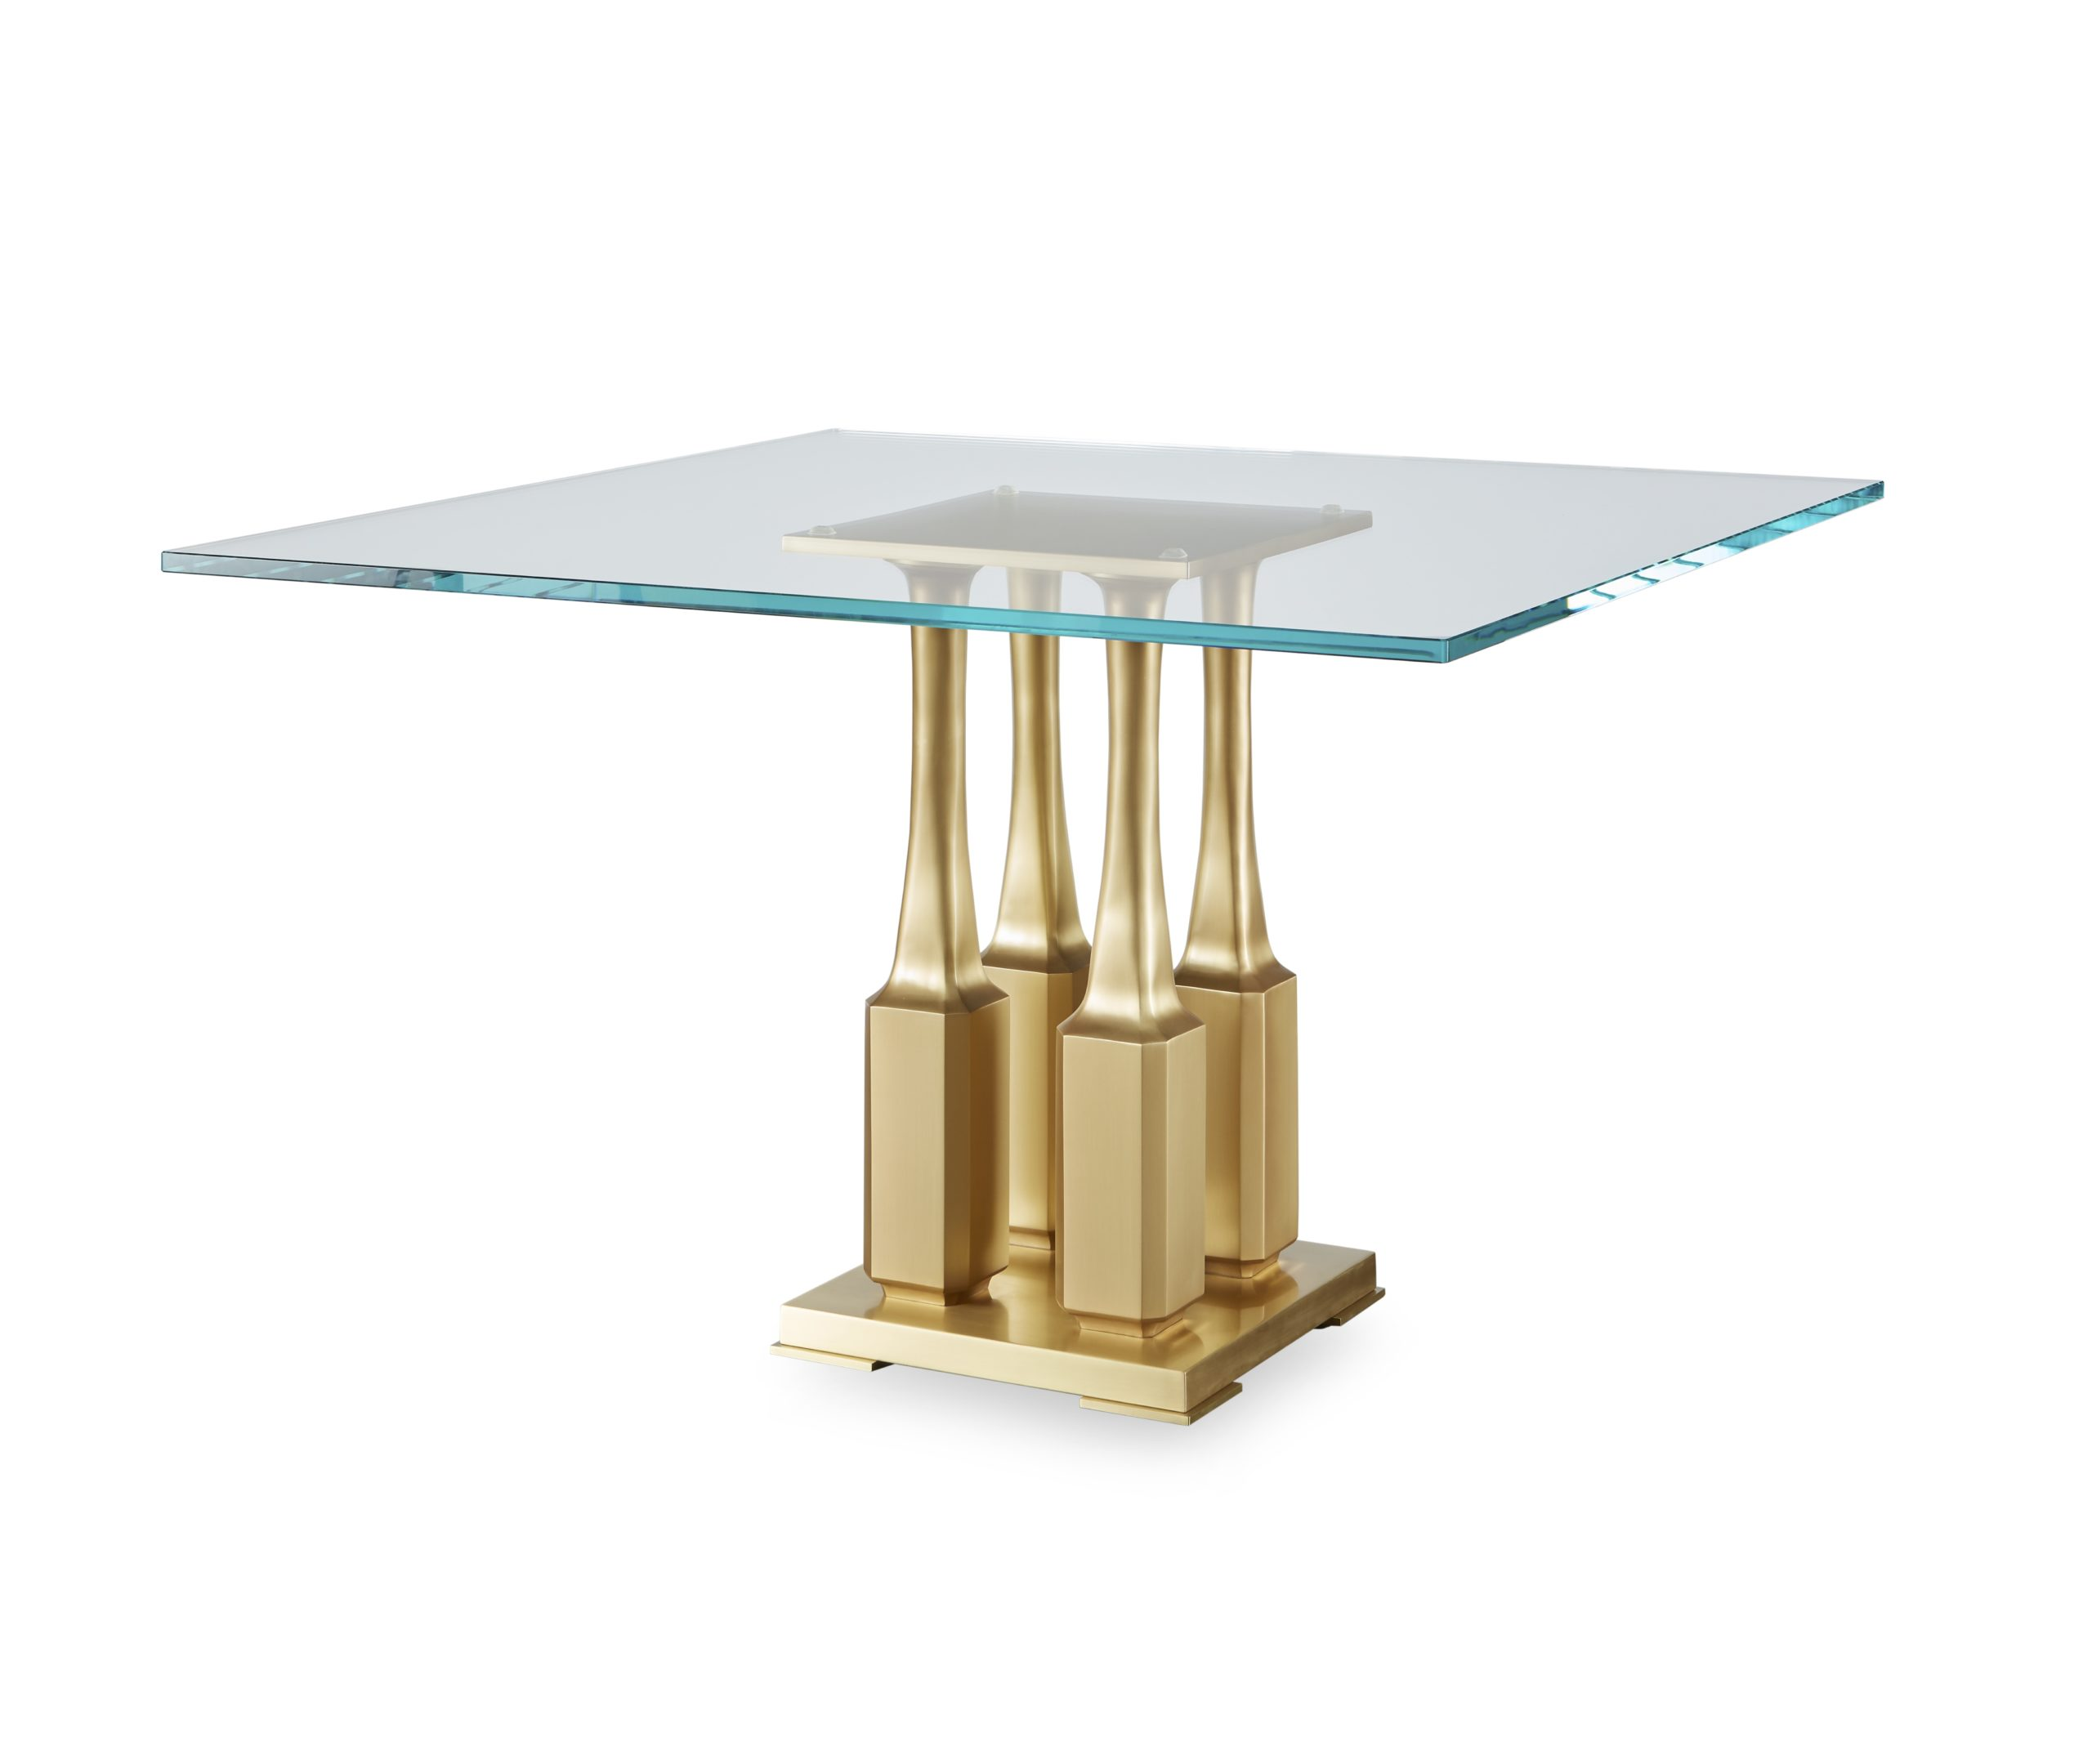 Baker_products_WNWN_villa_dining_table_BAA3237_SQUARE_FRONT_3QRT-scaled-2